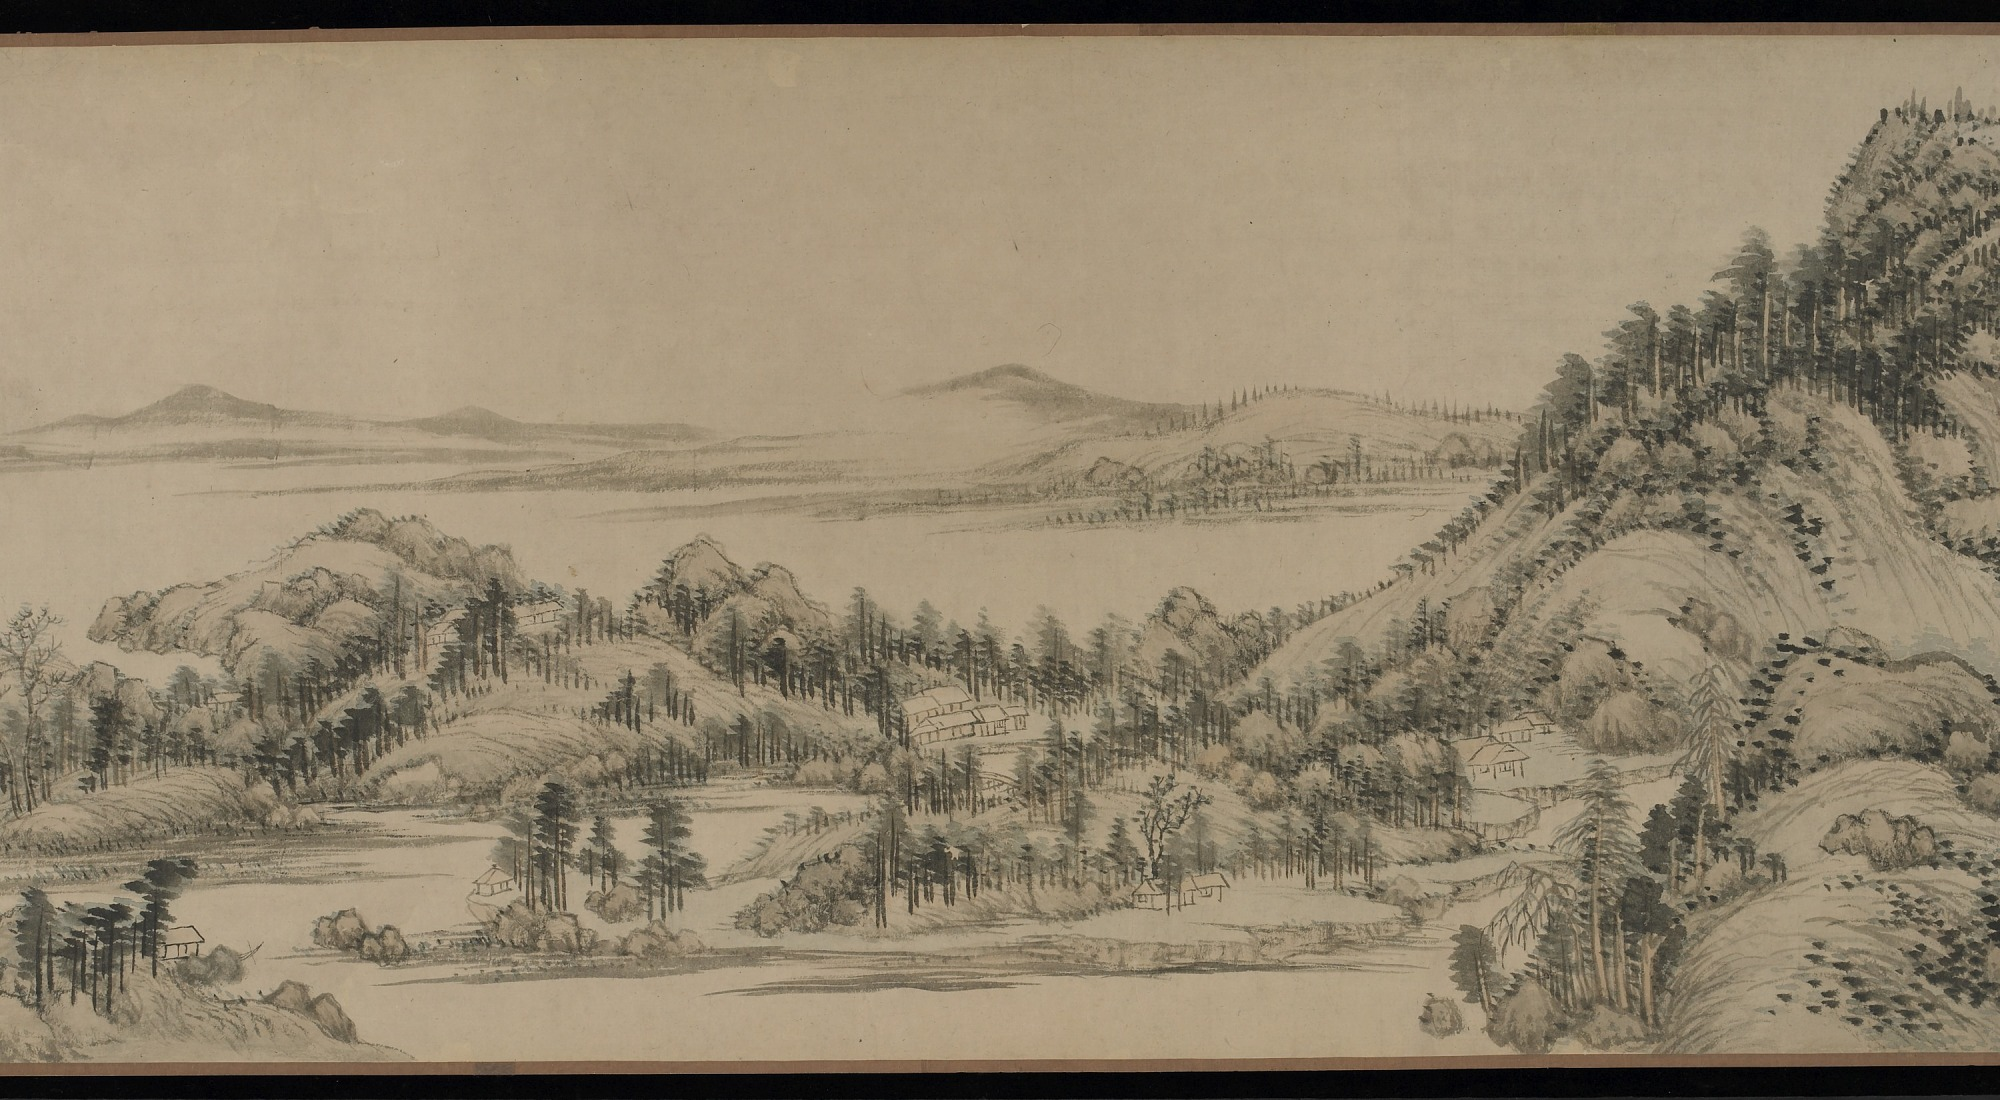 section 2: Dwelling in the Fuchun Mountains after Huang Gongwang